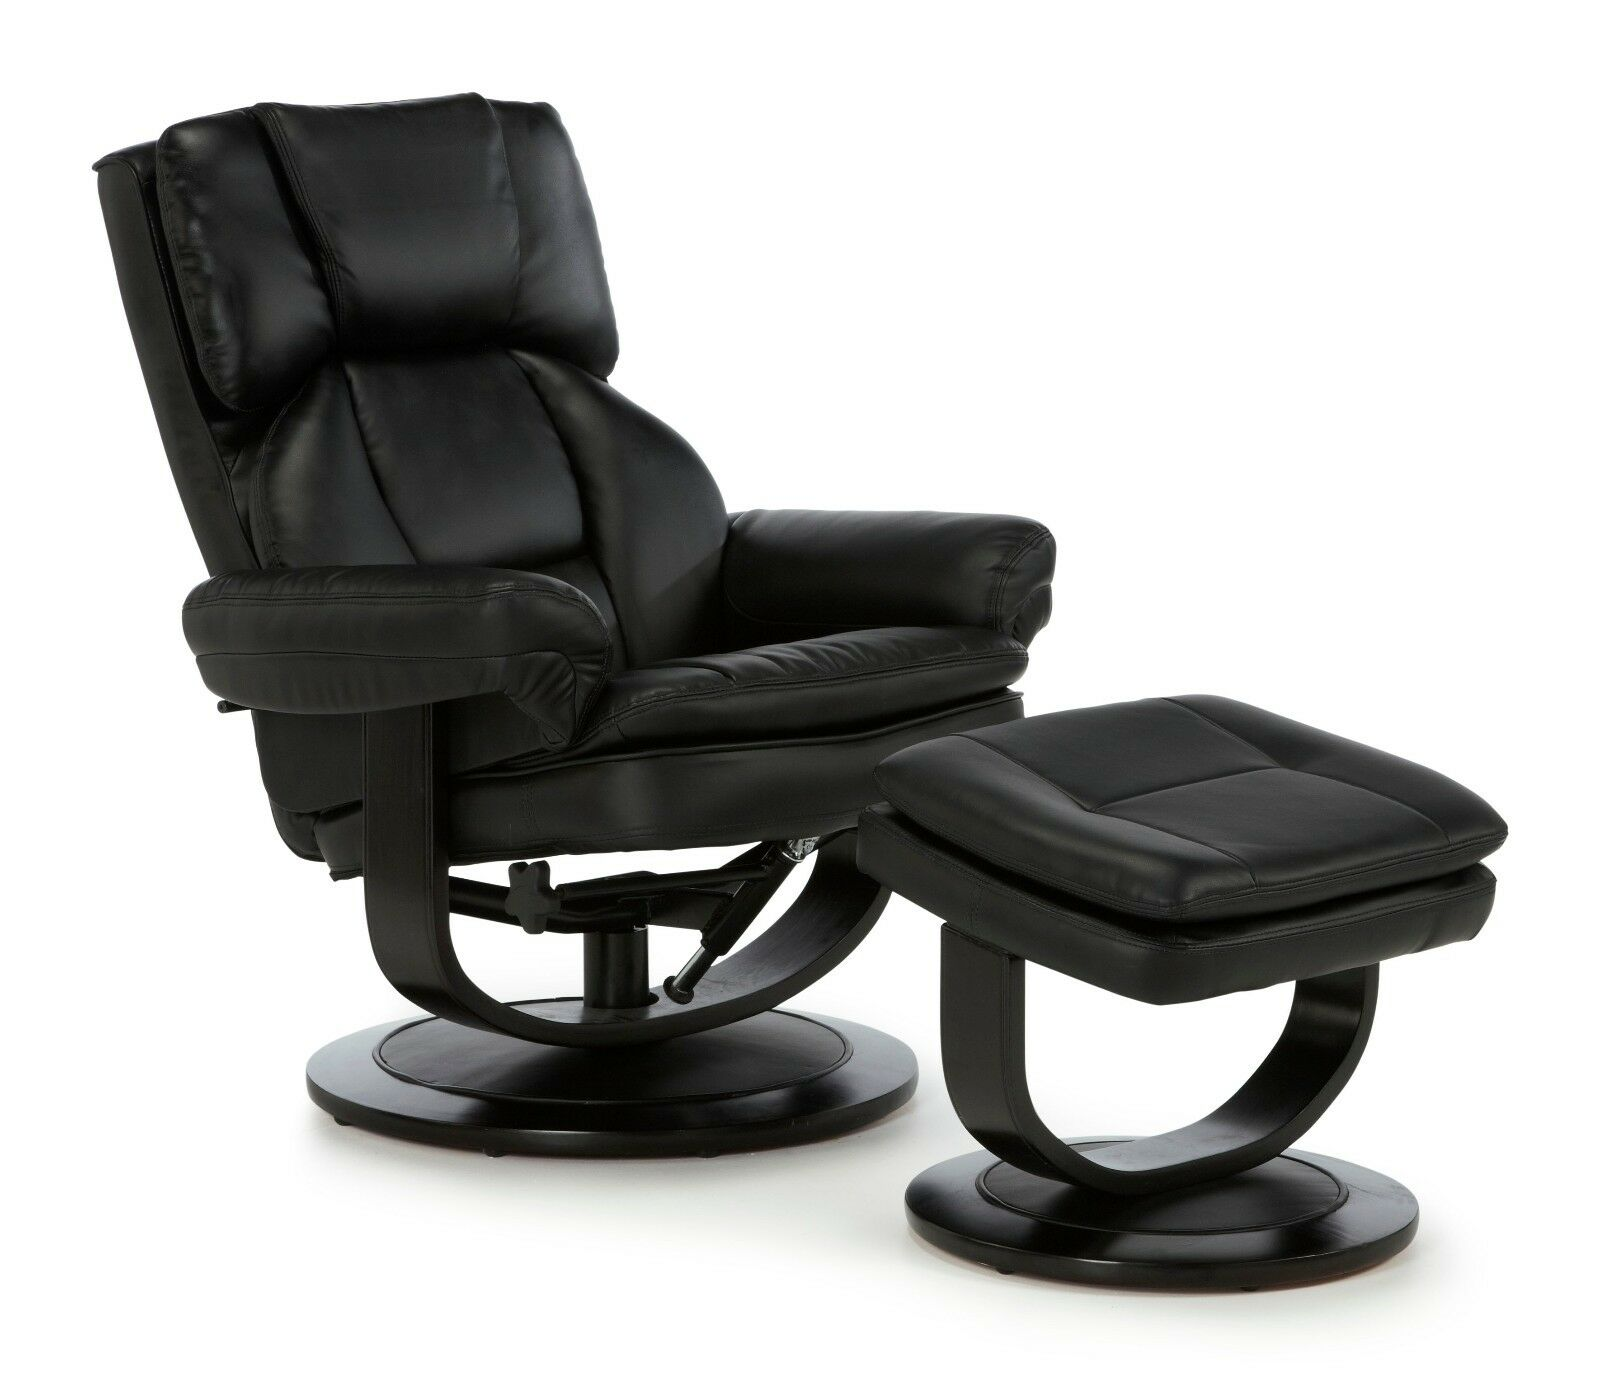 Upton Luxury Swivel Recliner Chair Reclining Armchair FREE ...